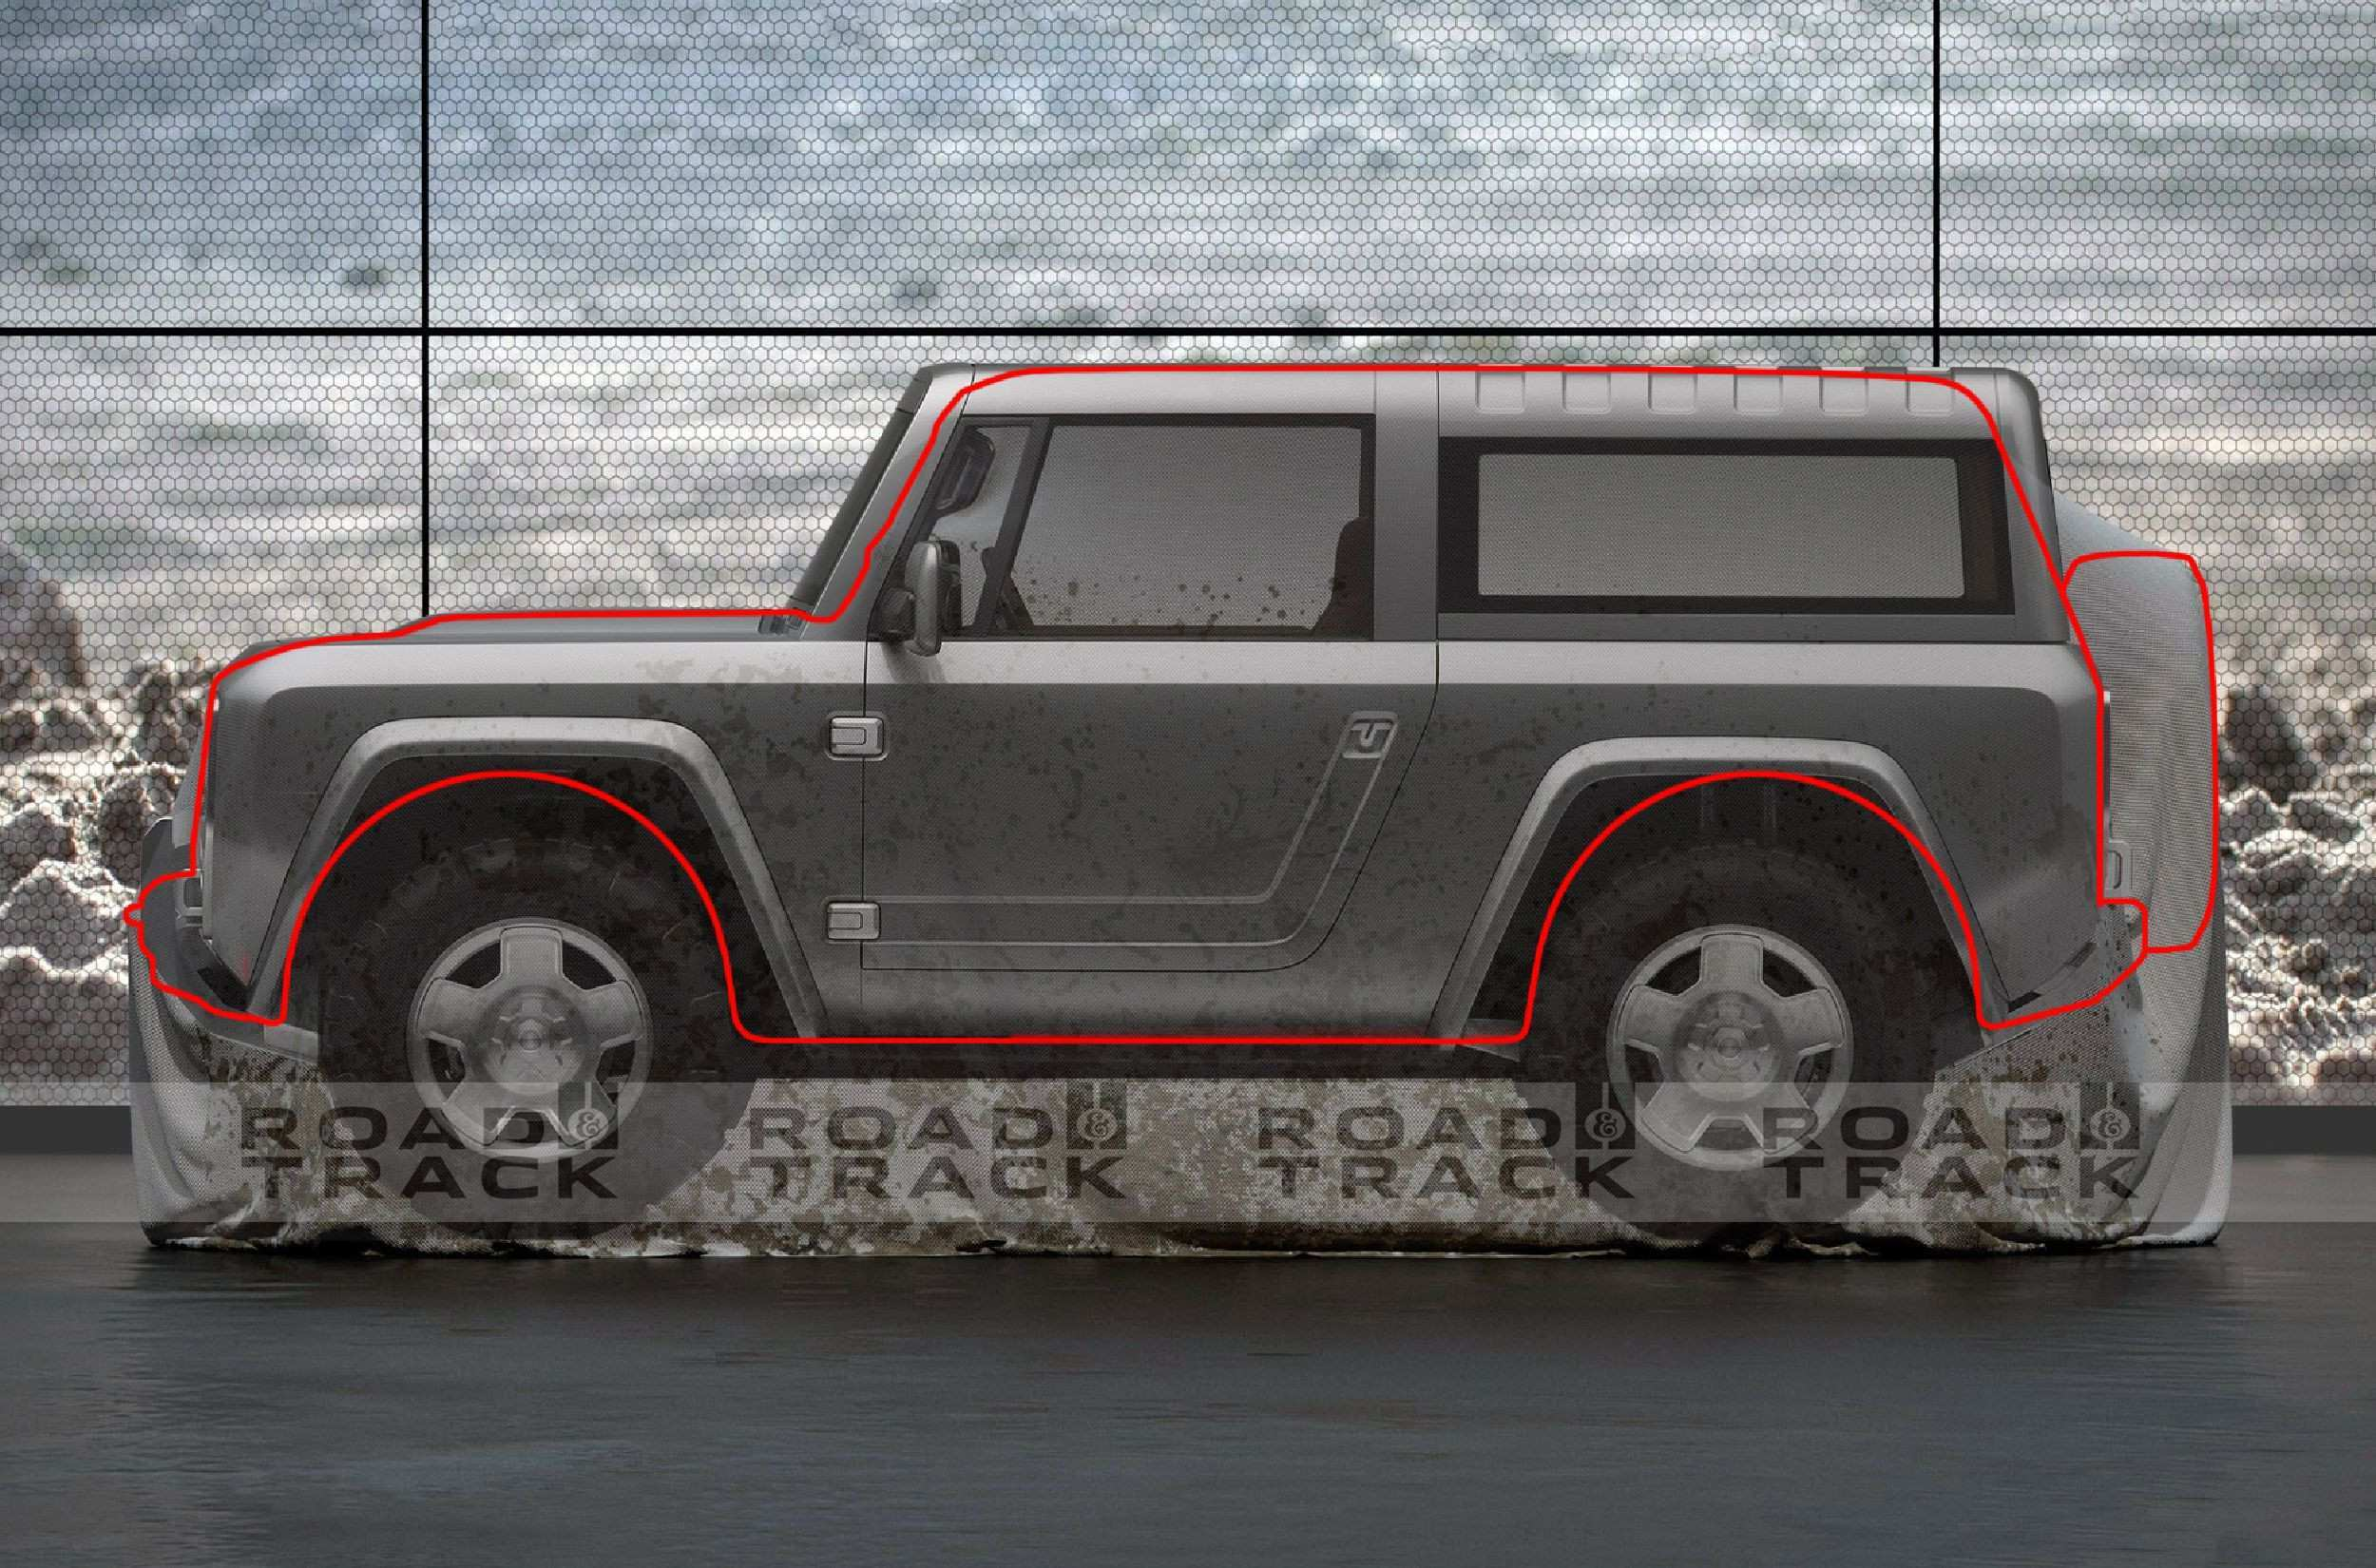 15 Great 2020 Ford Bronco Air Roof Images by 2020 Ford Bronco Air Roof